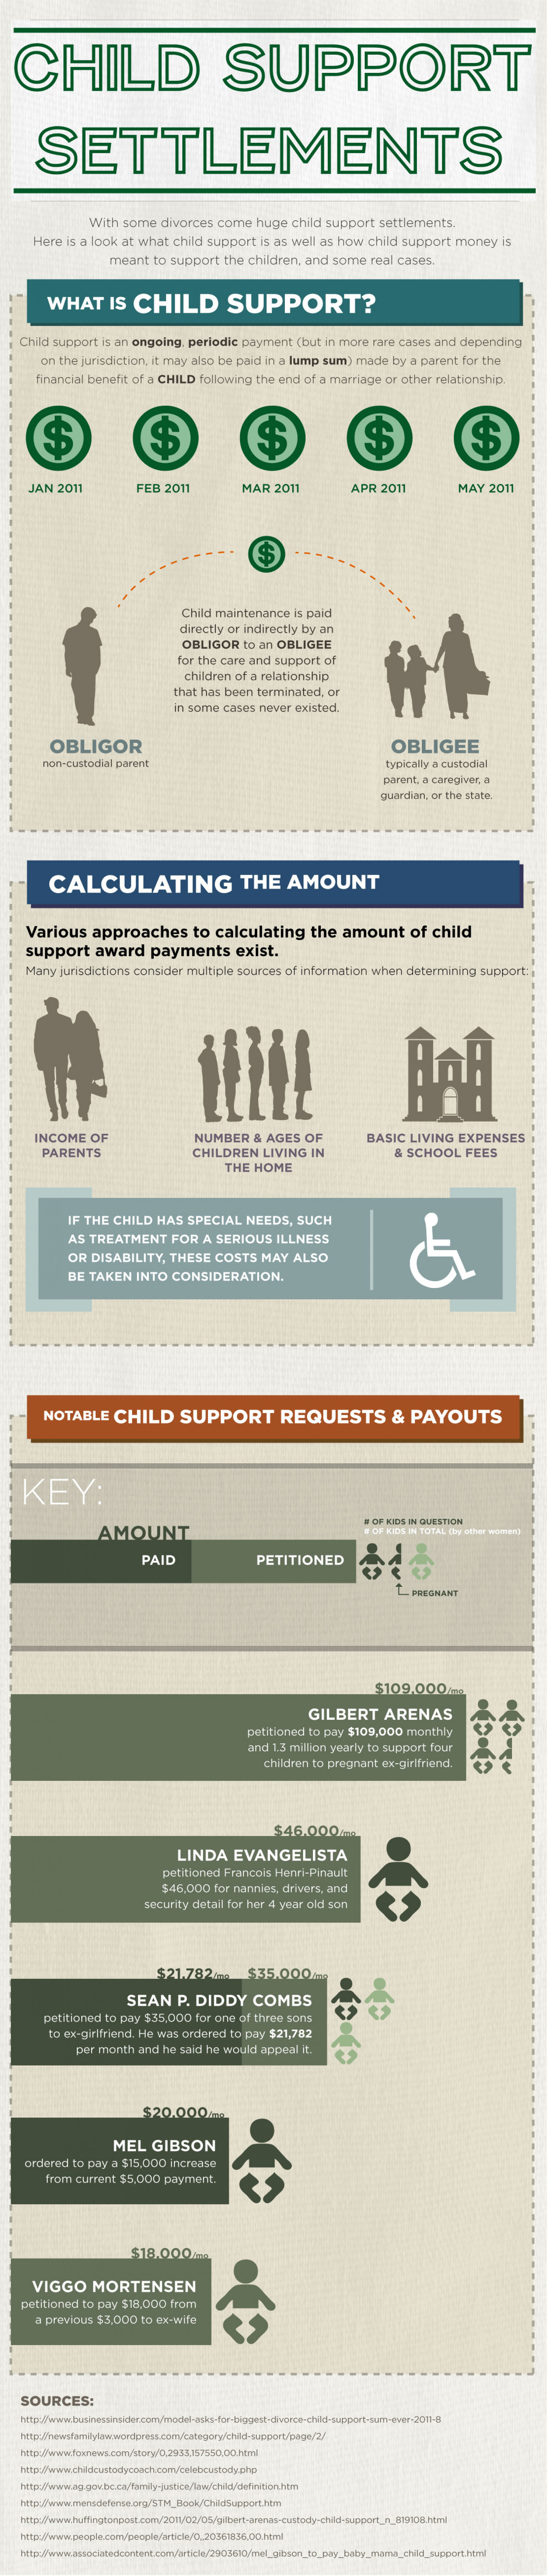 Child Support Settlements Infographic